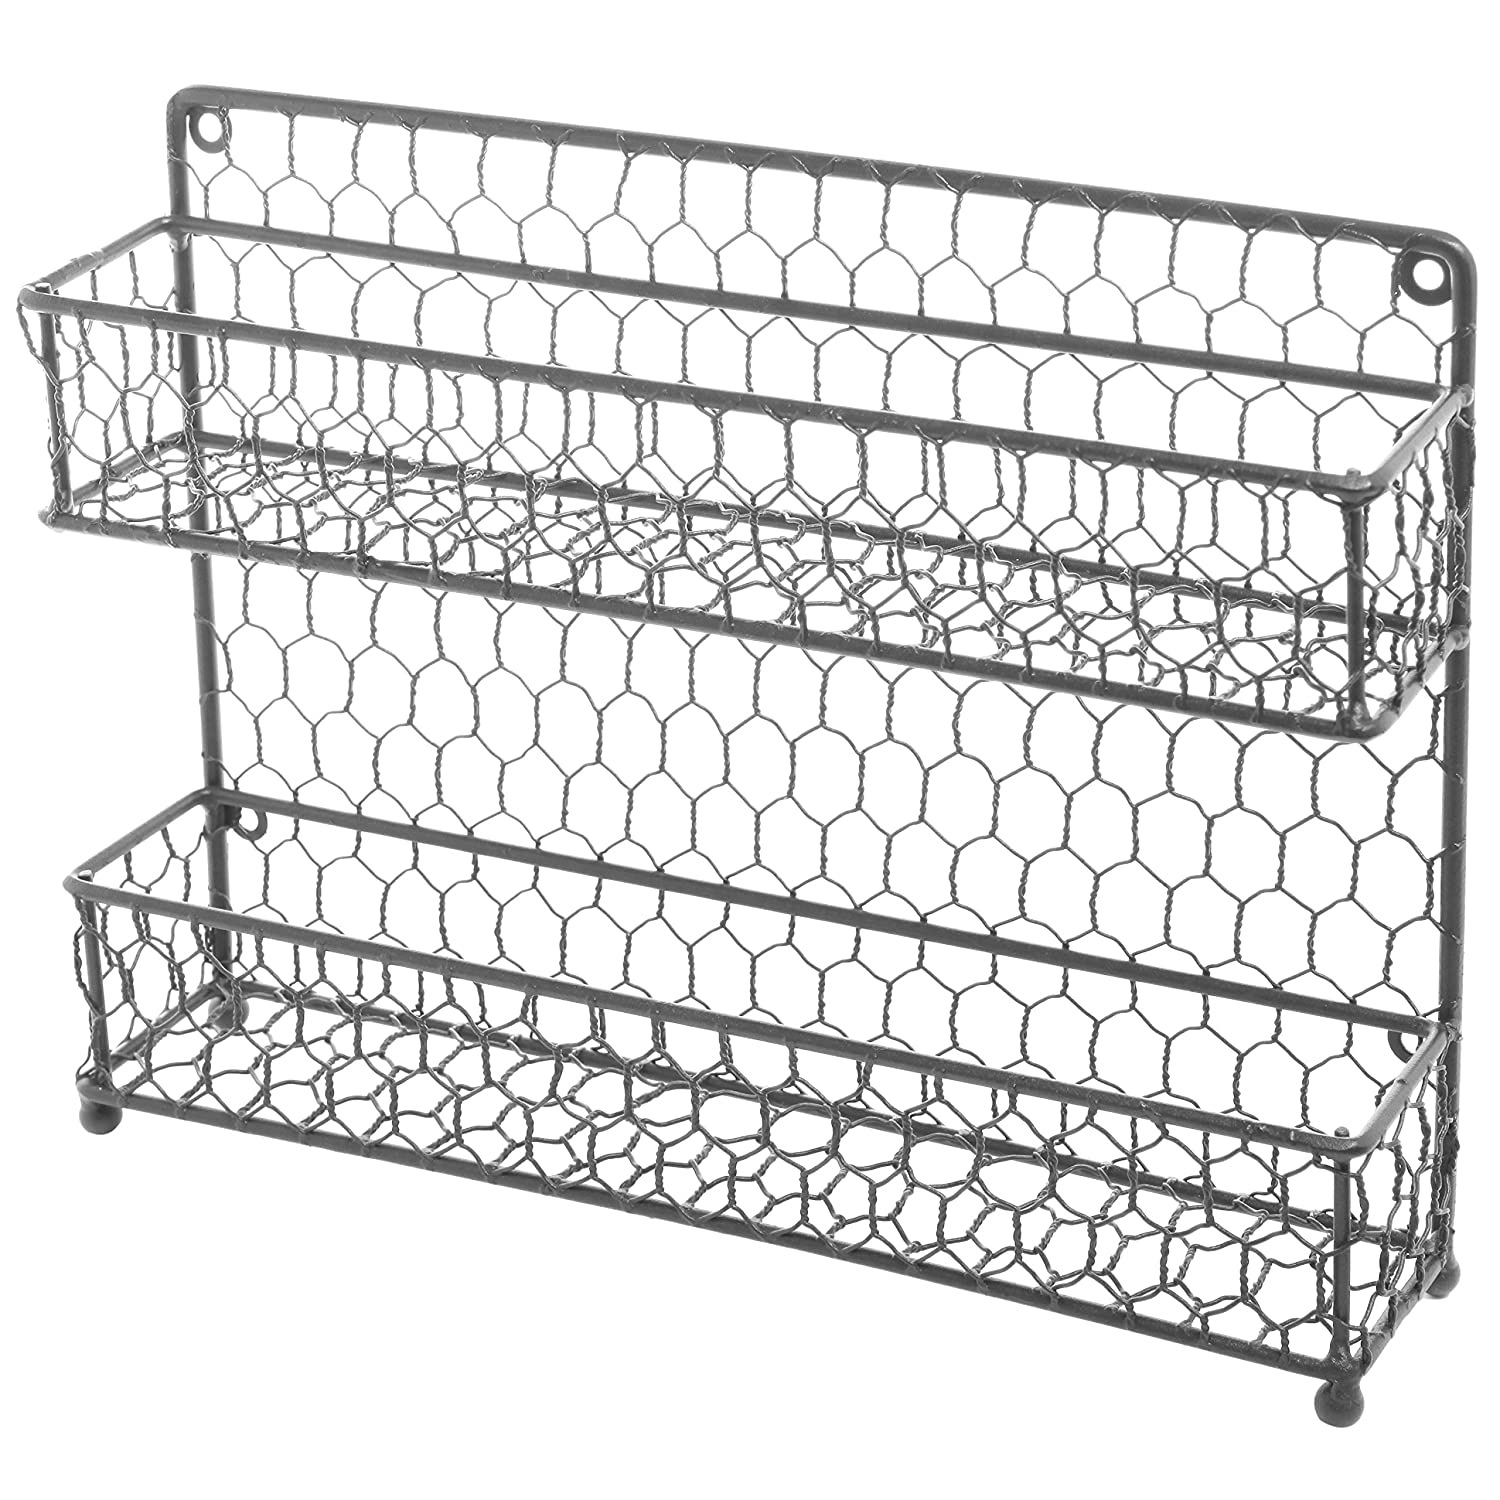 Amazon.com: MyGift Rustic Gray Dual Tier Wire Spice Rack Jars ...